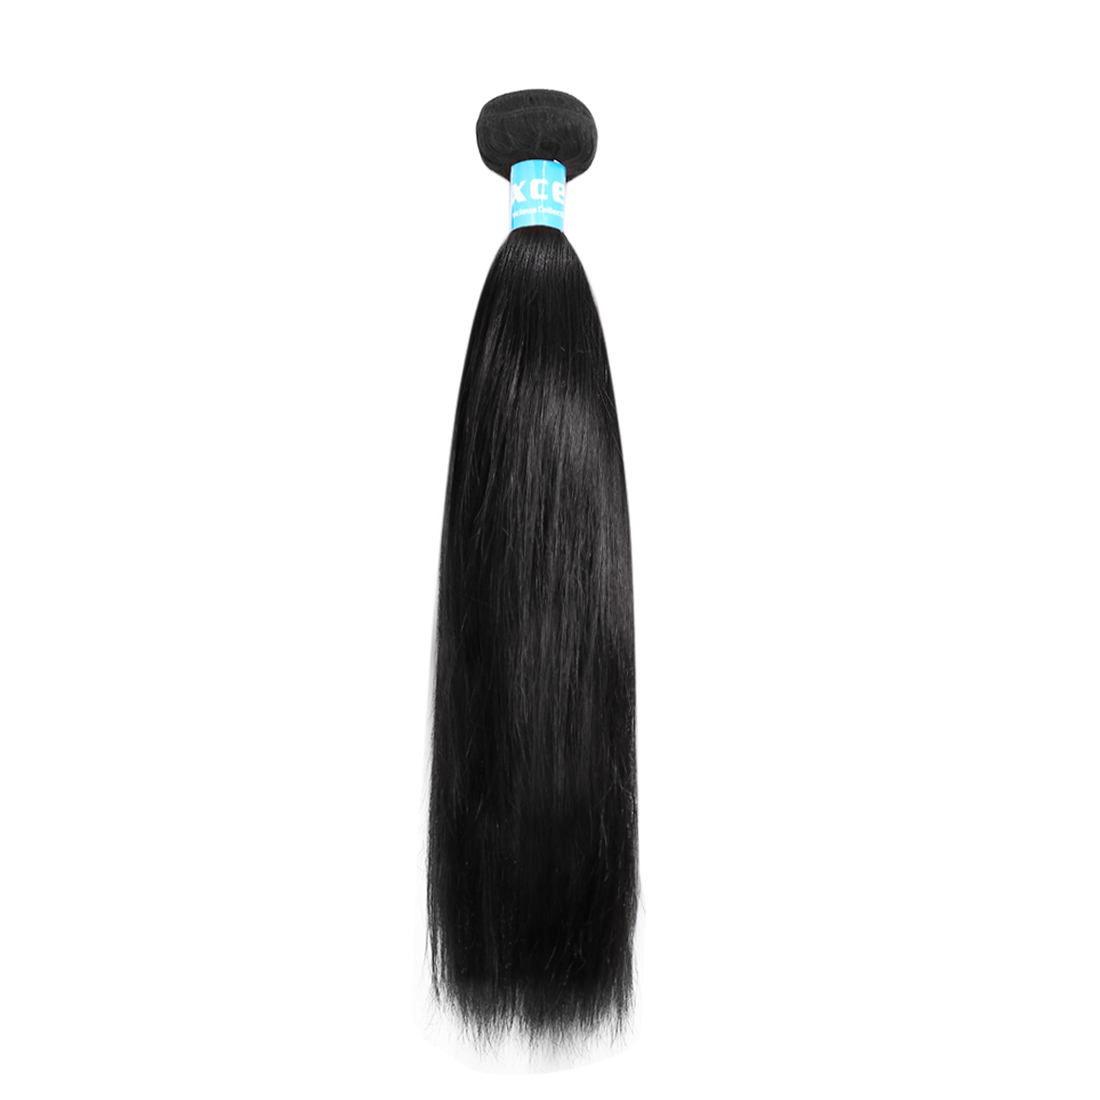 "Brazilian Remy Silky Straight Human Hair Weave Weft Extensions 6A 18"" 1 Bundle"